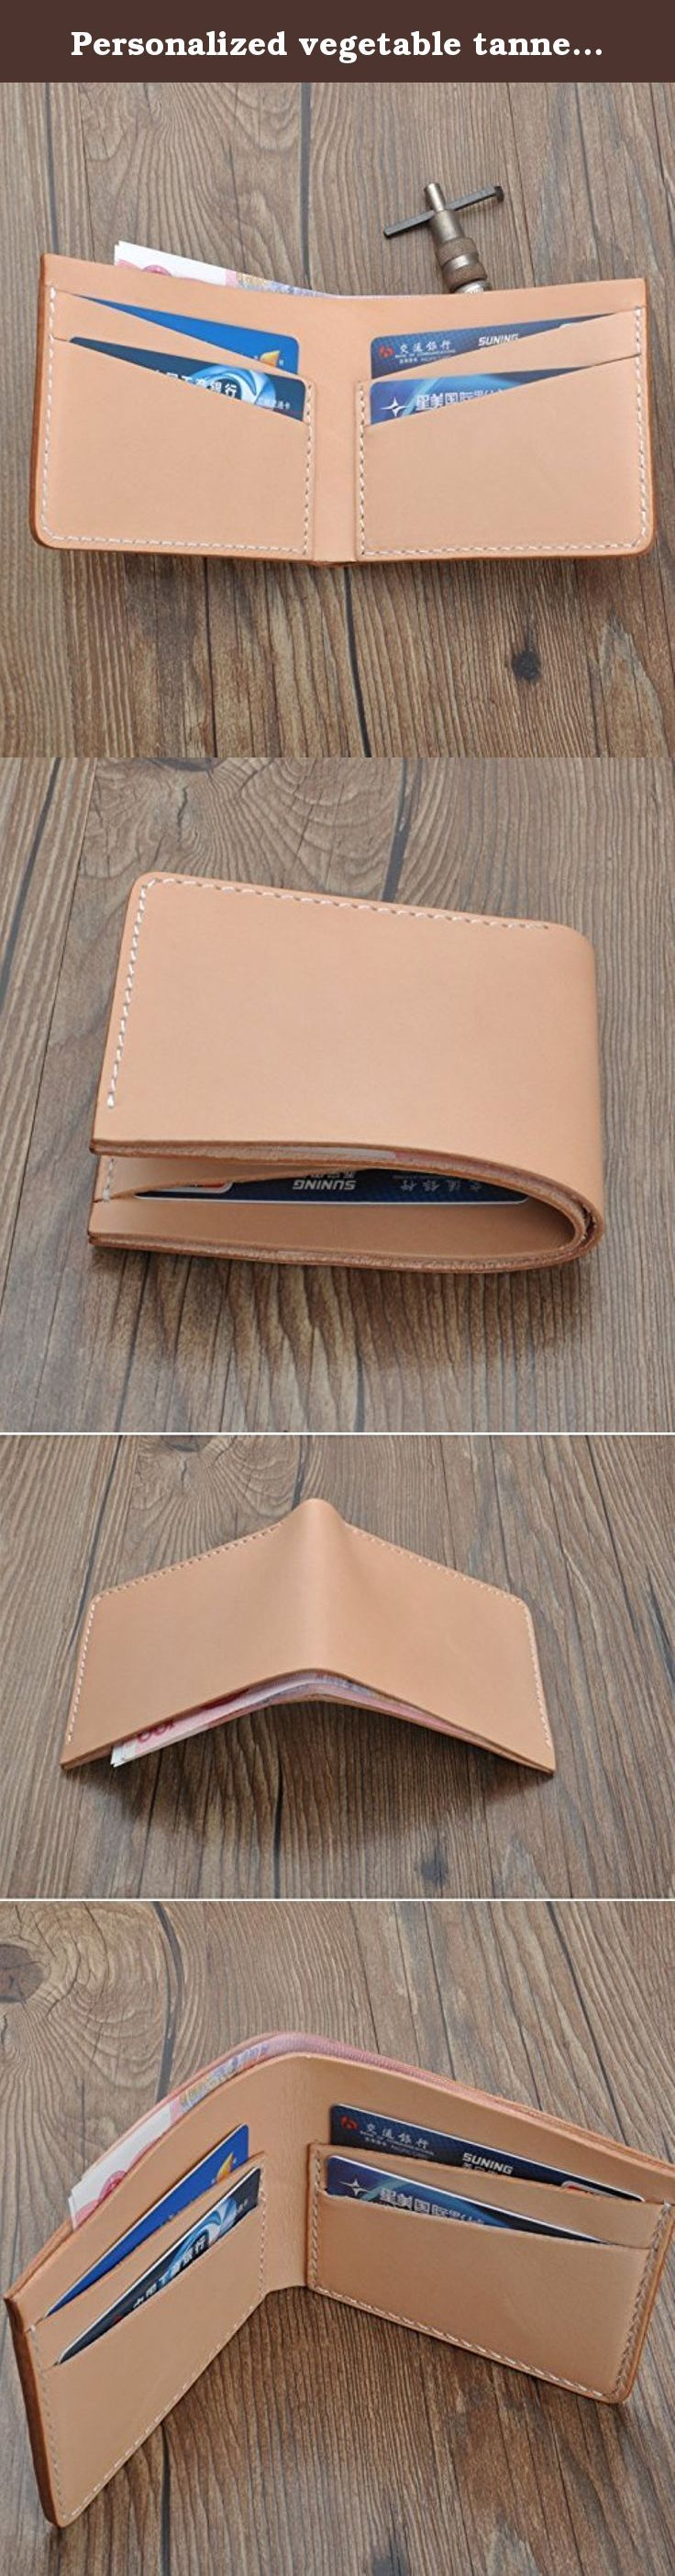 Personalized vegetable tanned leather men Bi-fold Wallet with card holder gifts billfold monogrammed leather wallet. This style leather wallet is designed to protect and carry your money ,credit cards very well .Each case will be tested before shipping .This case edge is polished and waxed twice to make it very smoothly. Features: 100% hand work 100% Italian leather soft Personalized instructions: 1 Please tell me your initials in the message box during checkout. 2 The default location is…